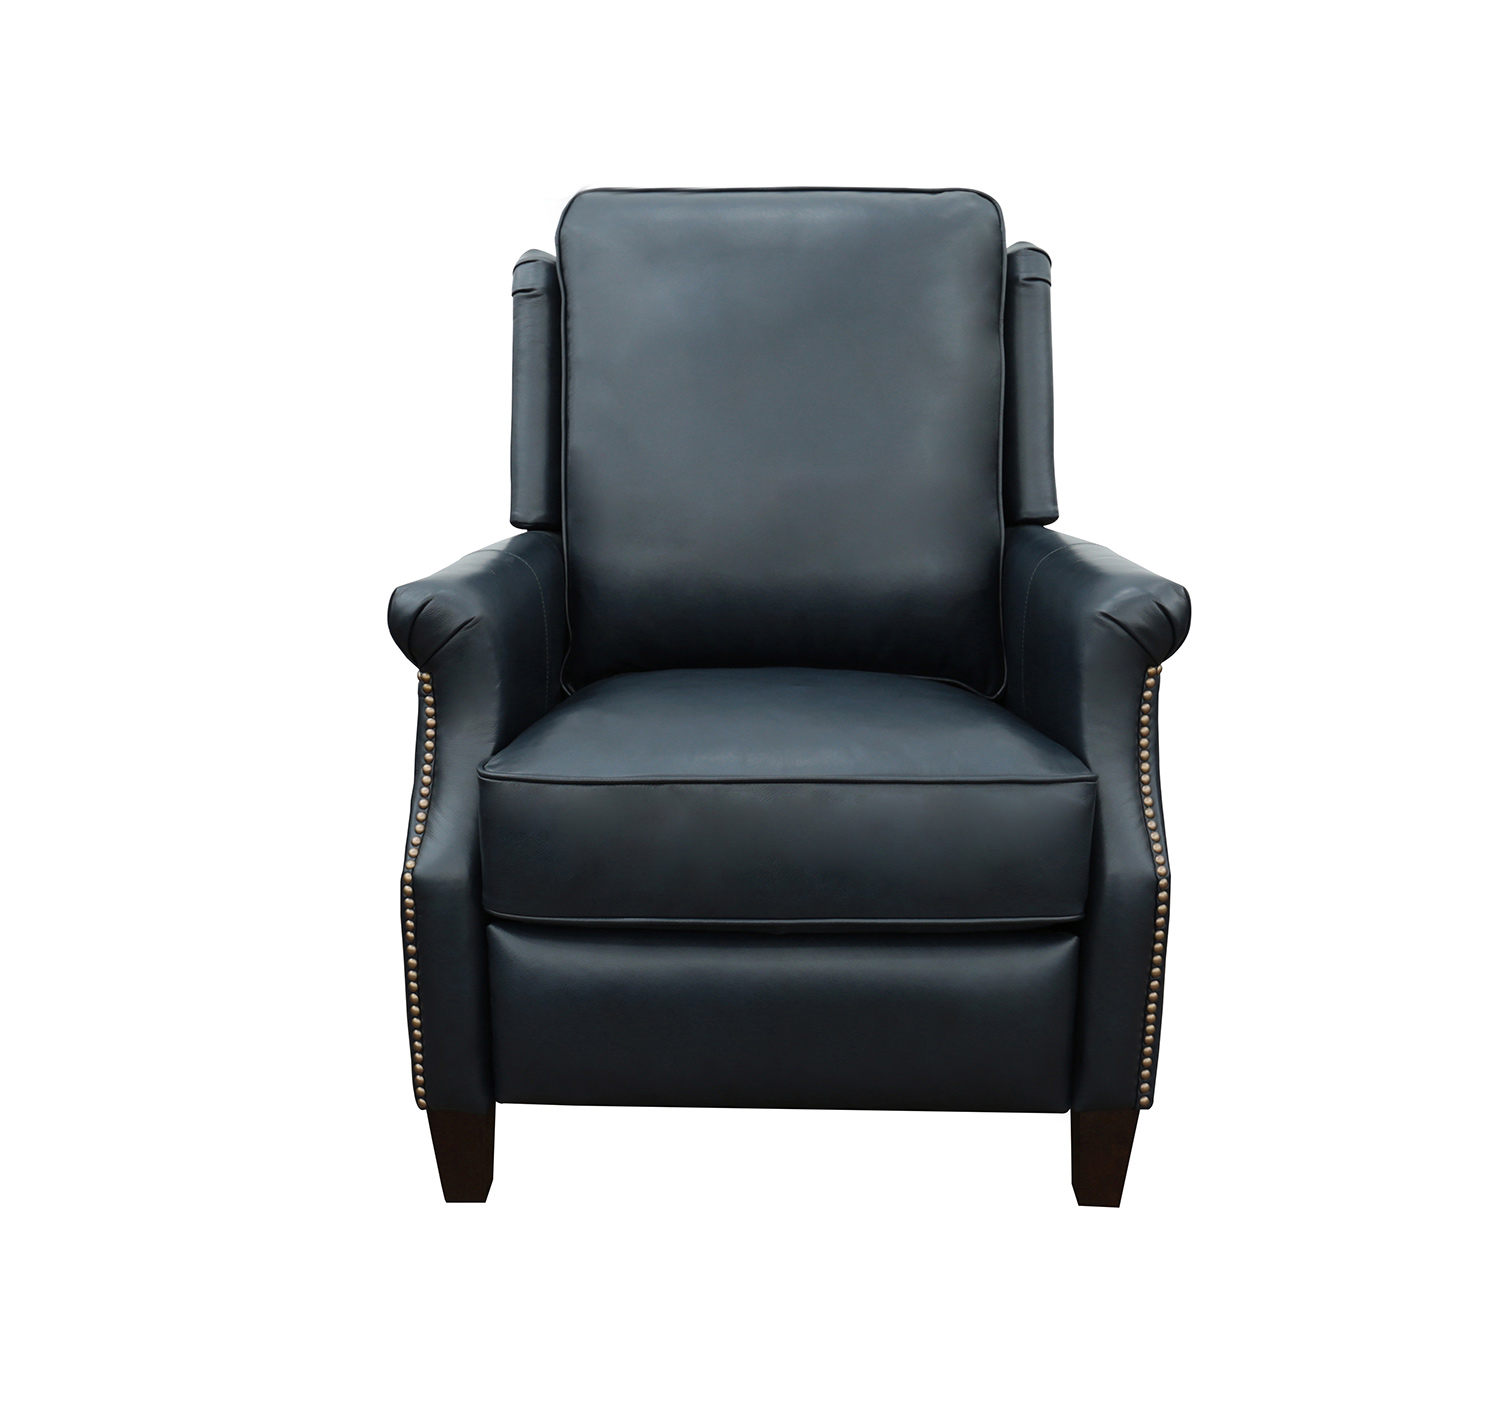 Barcalounger Riley Recliner Chair - Shoreham Blue/All Leather